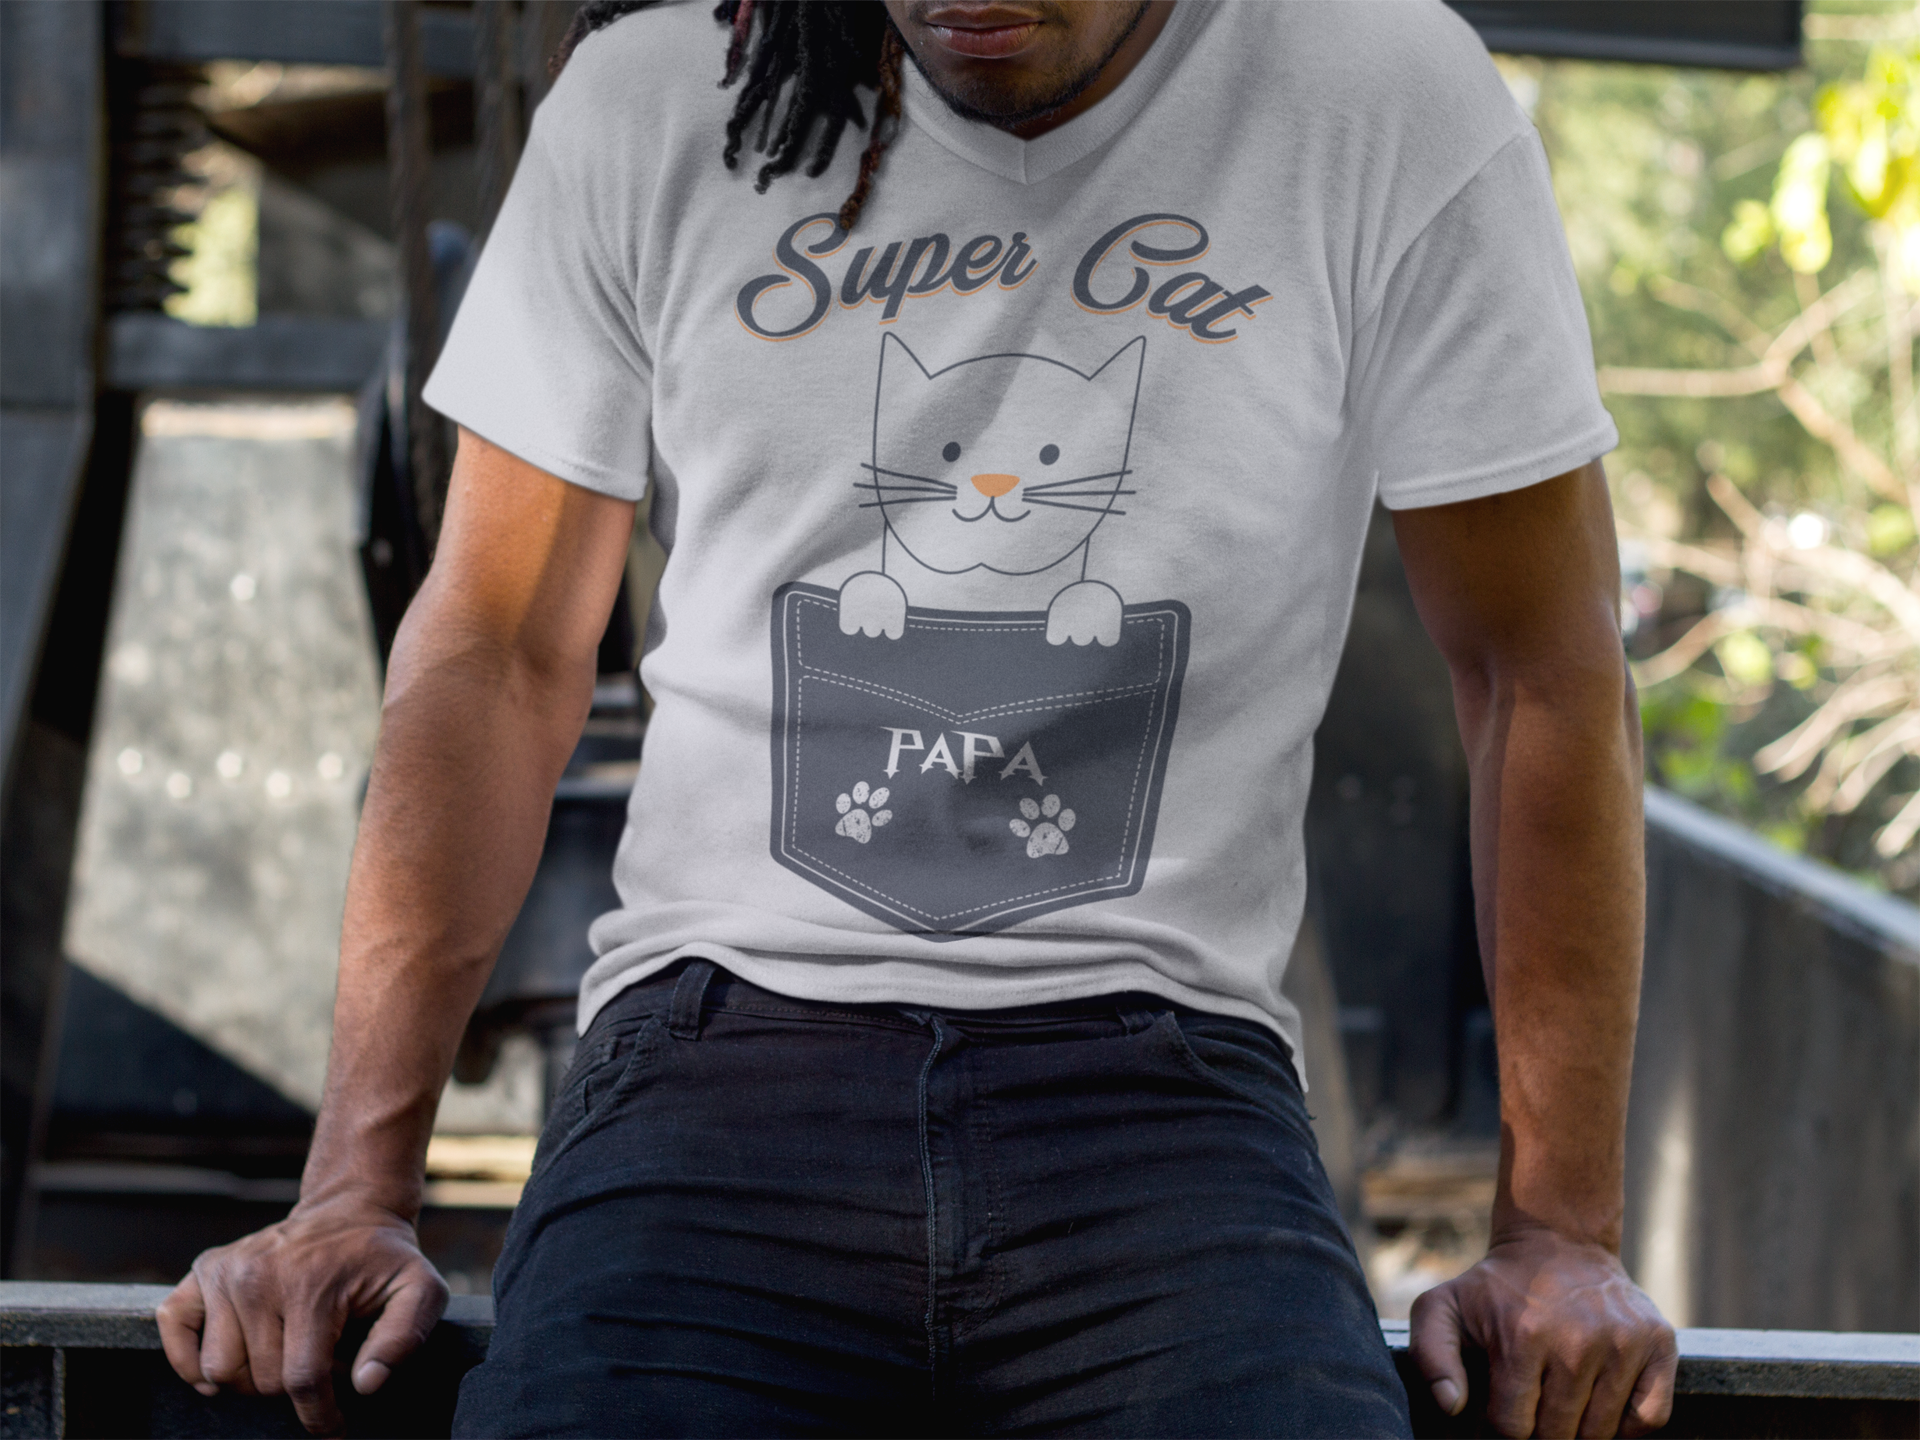 Super Cat Papa T Shirt - cat lovers gifts - cat lovers t shirts - Father's Day - Men's T-Shirt, Long Sleeve Tee. ***Printed in the USA